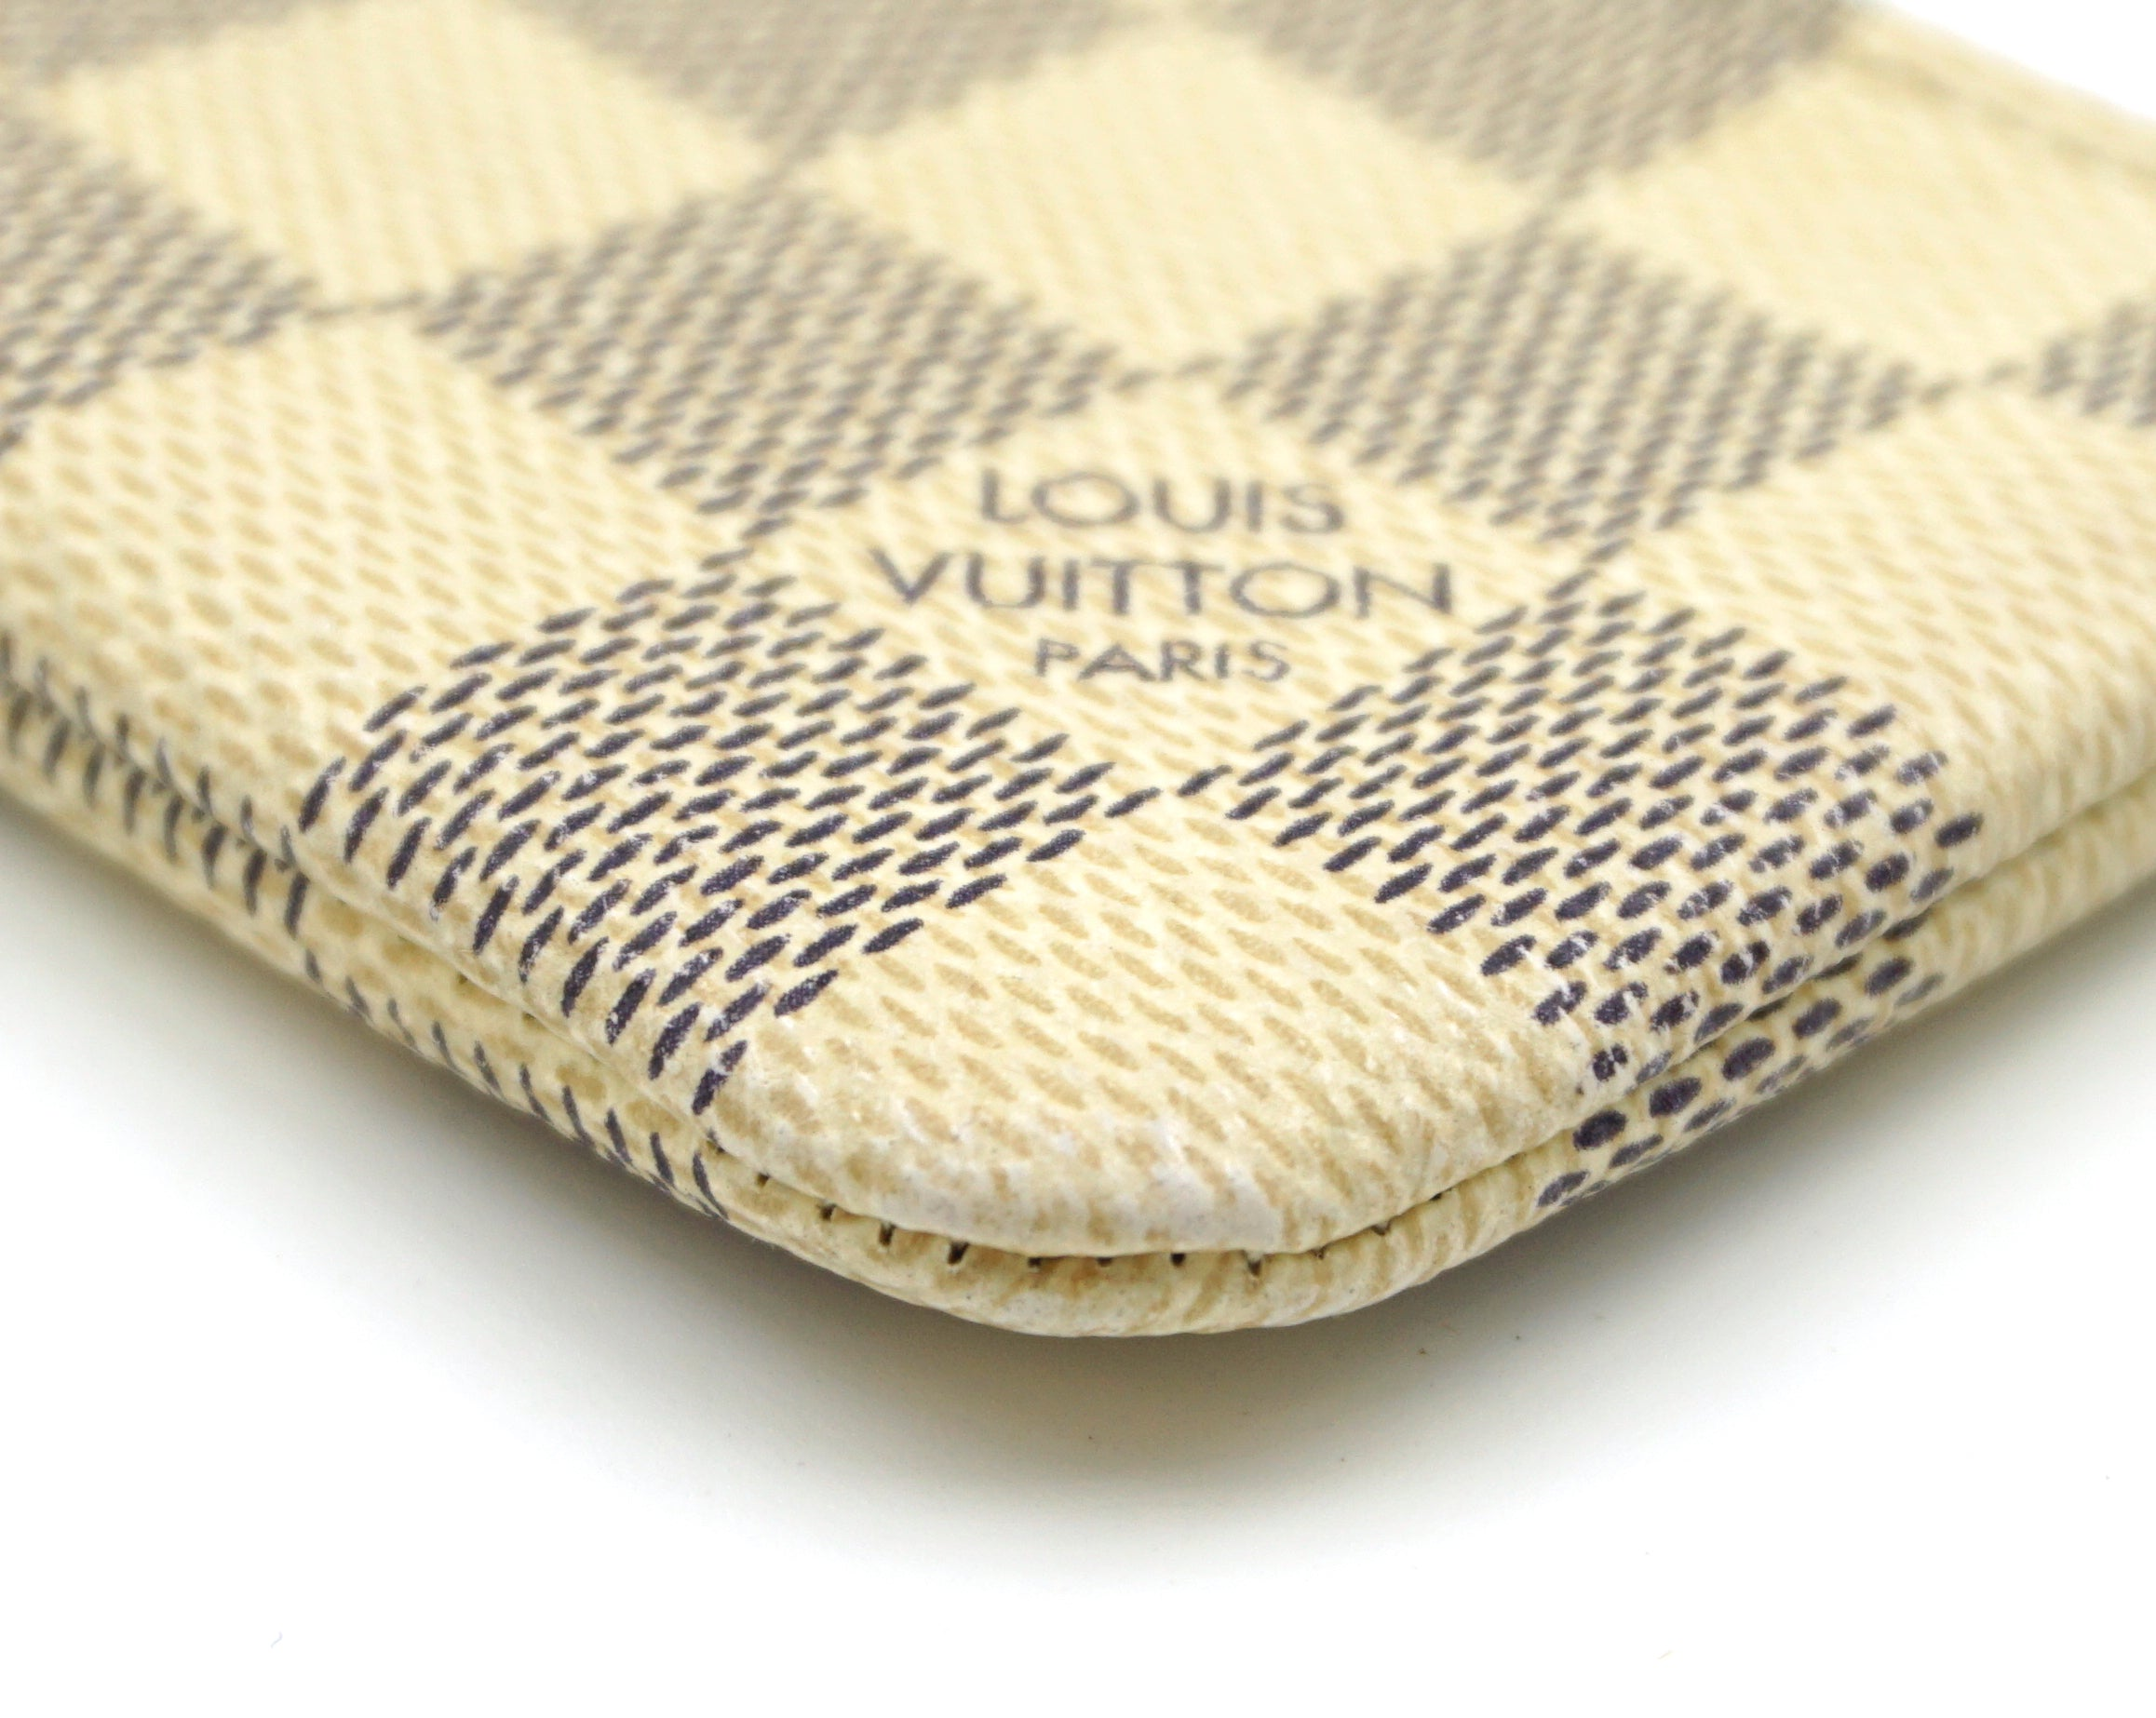 Louis Vuitton Damier Azur  Key Cles Coin Wallet